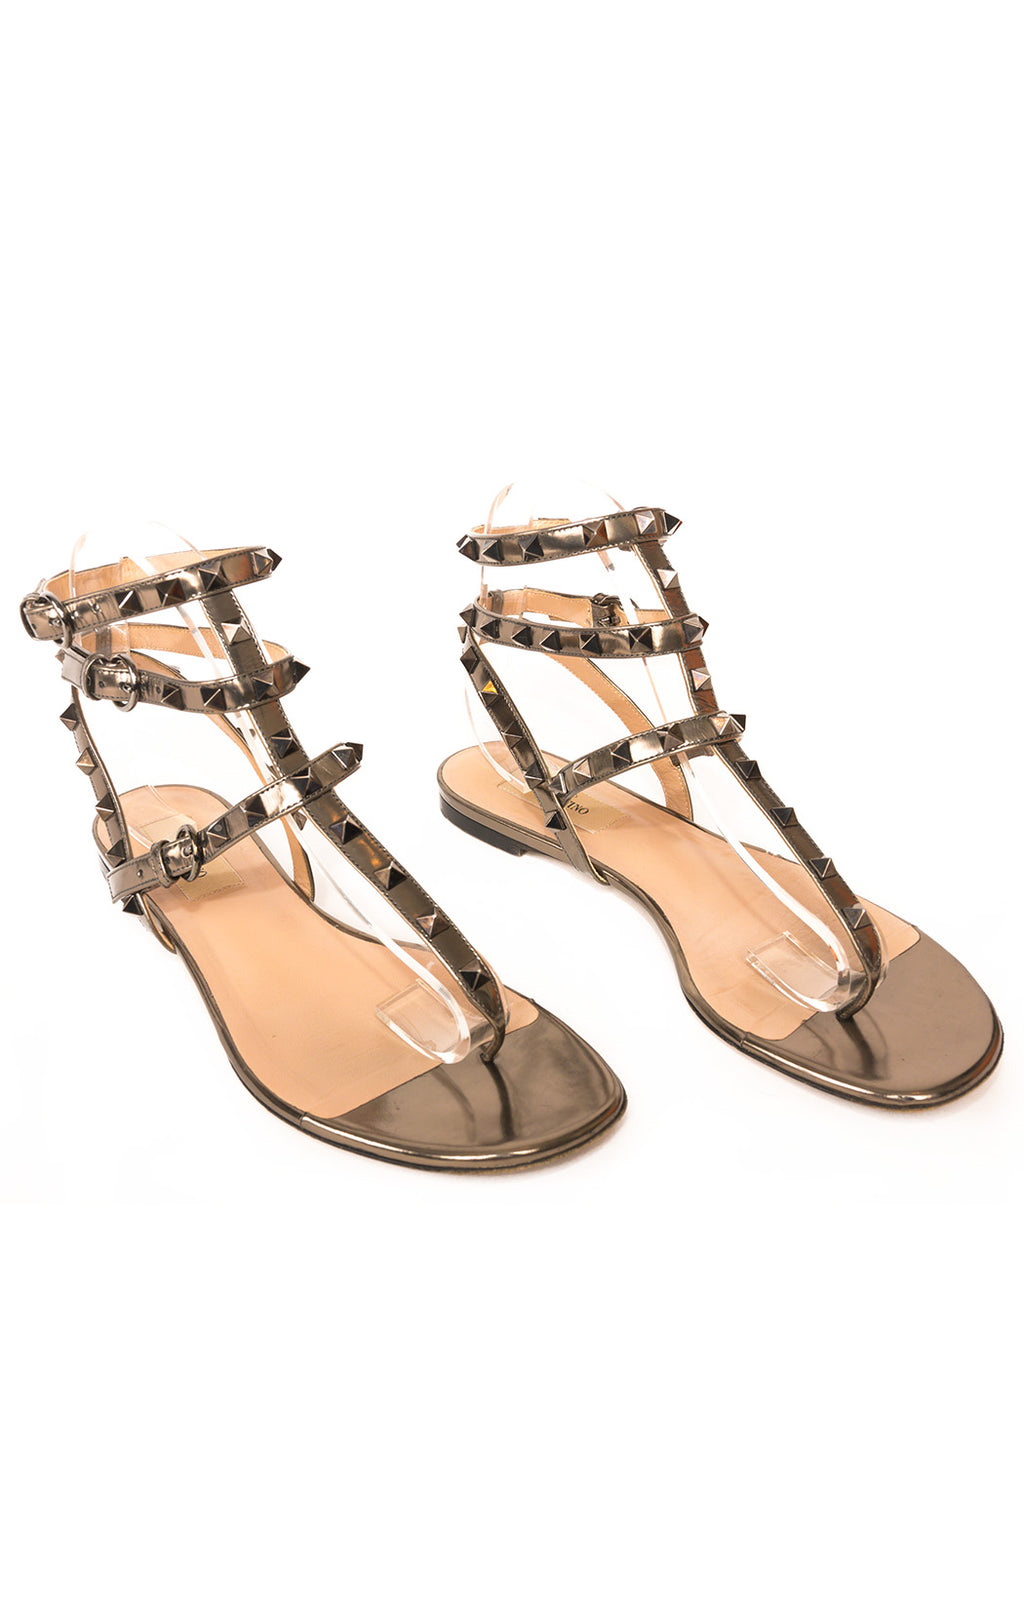 Side view of VALENTINO  Sandals Size: 39/9